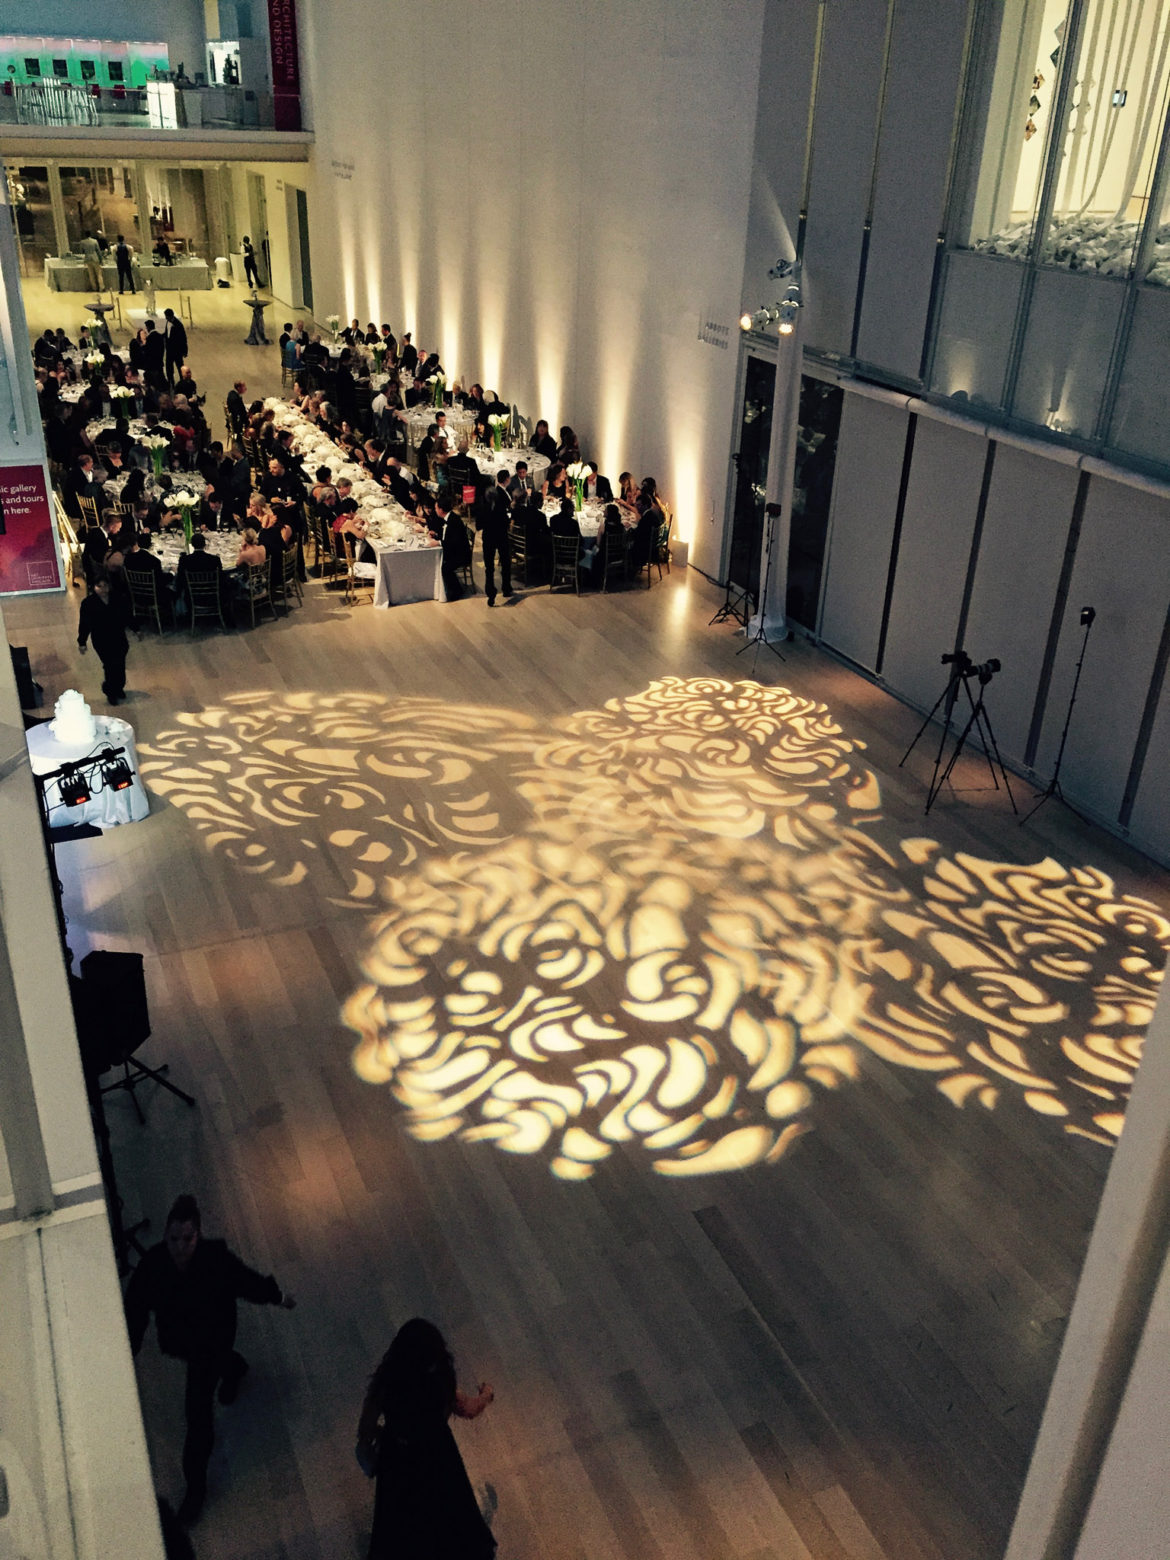 Elegant_Event_Lighting_Chicago_Art_Institute_Griffin_Court_Wedding_LED_White_Uplighting_Dance_Floor_Lighting